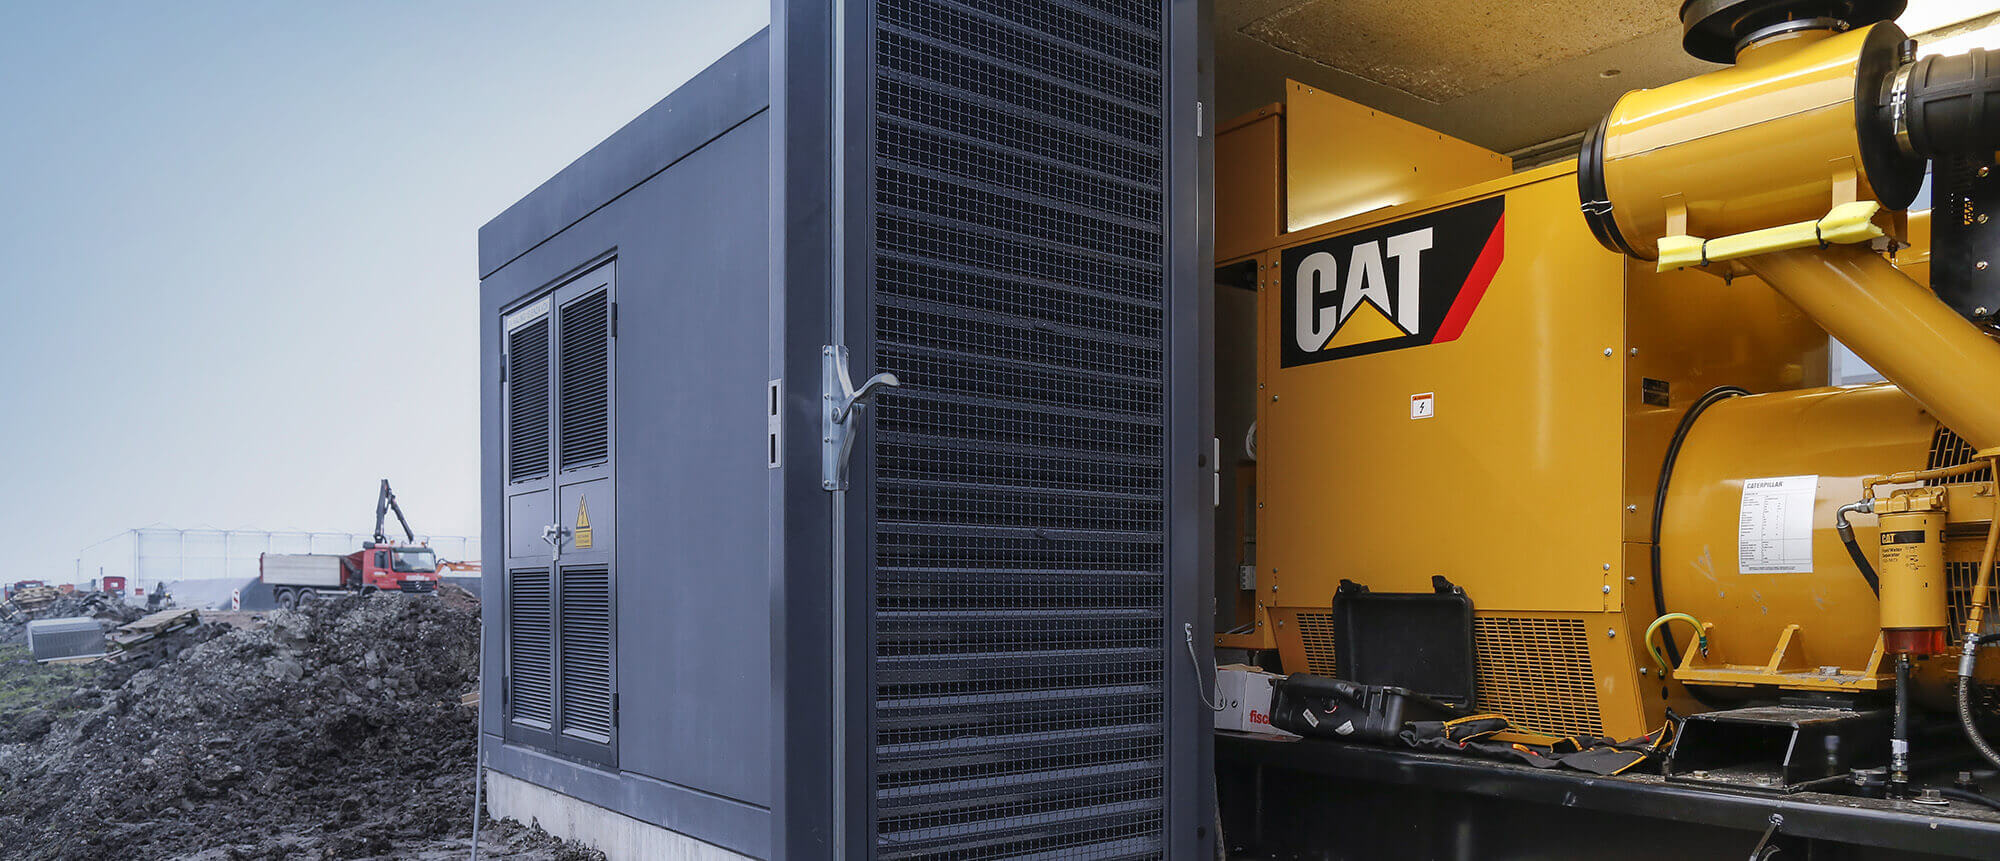 Power supply in all situations thanks to Caterpillar engines